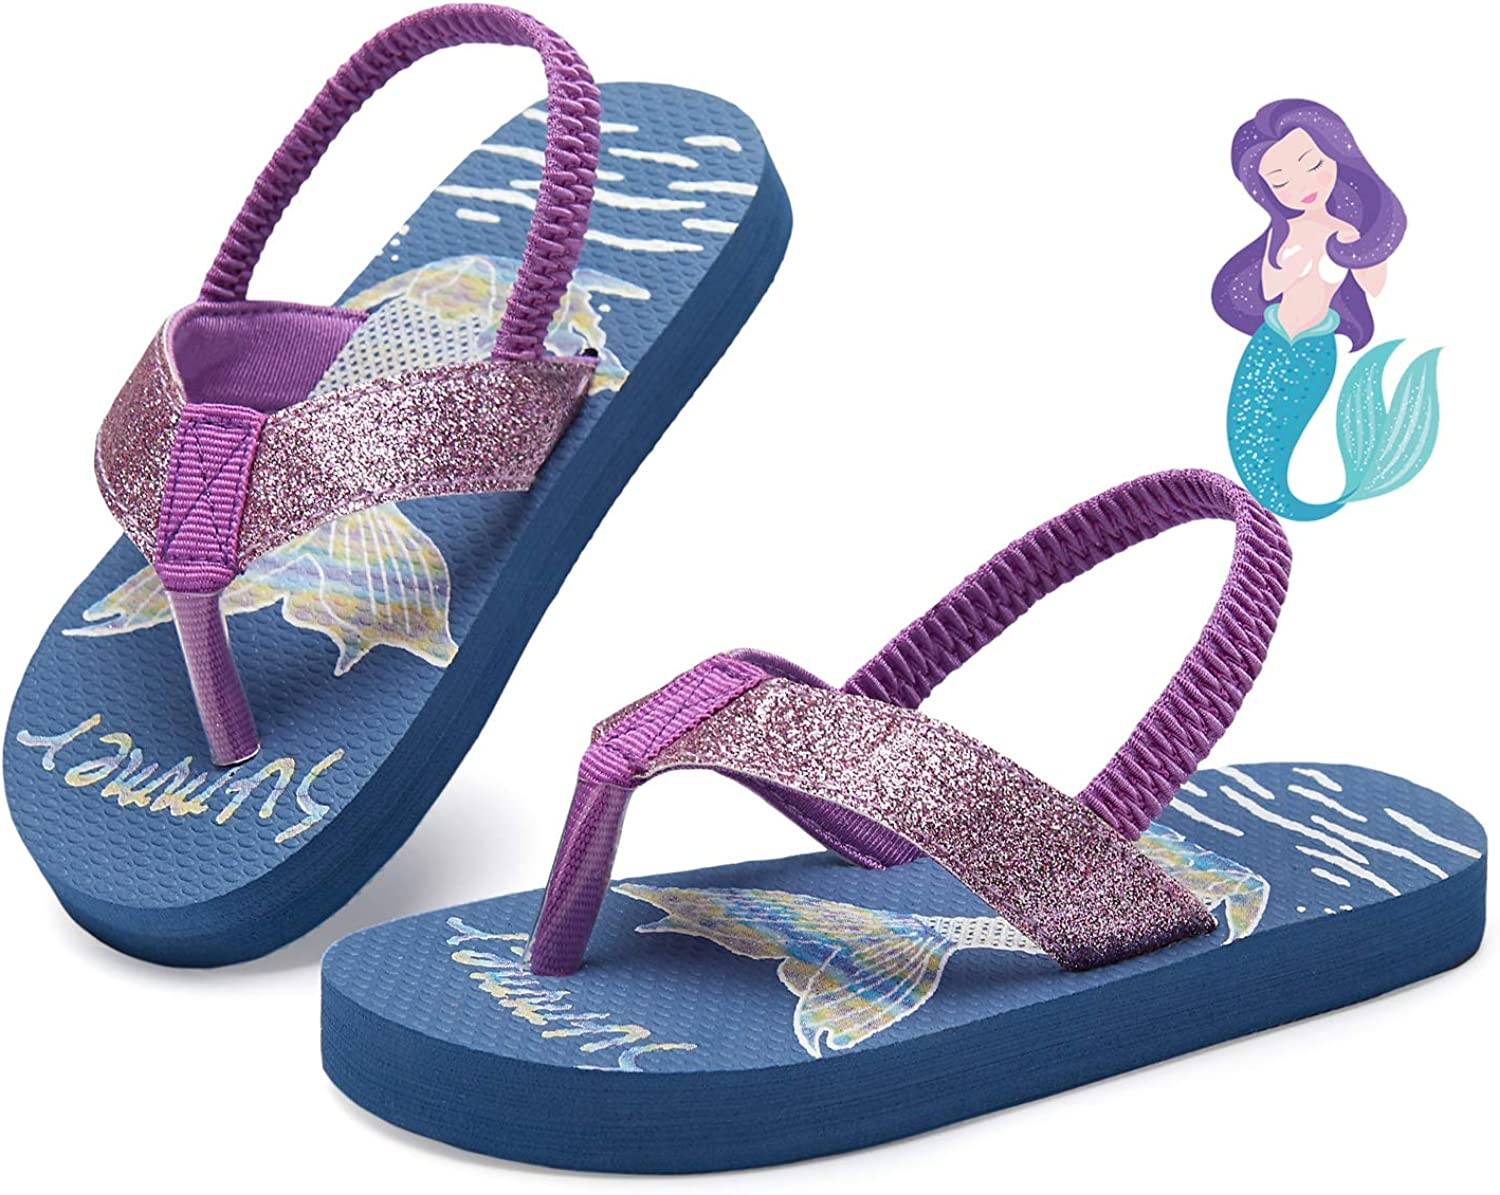 Smilore Toddler Flip Flops Boys & Girls Sandals | Kids Water Shoes for Beach and Pool